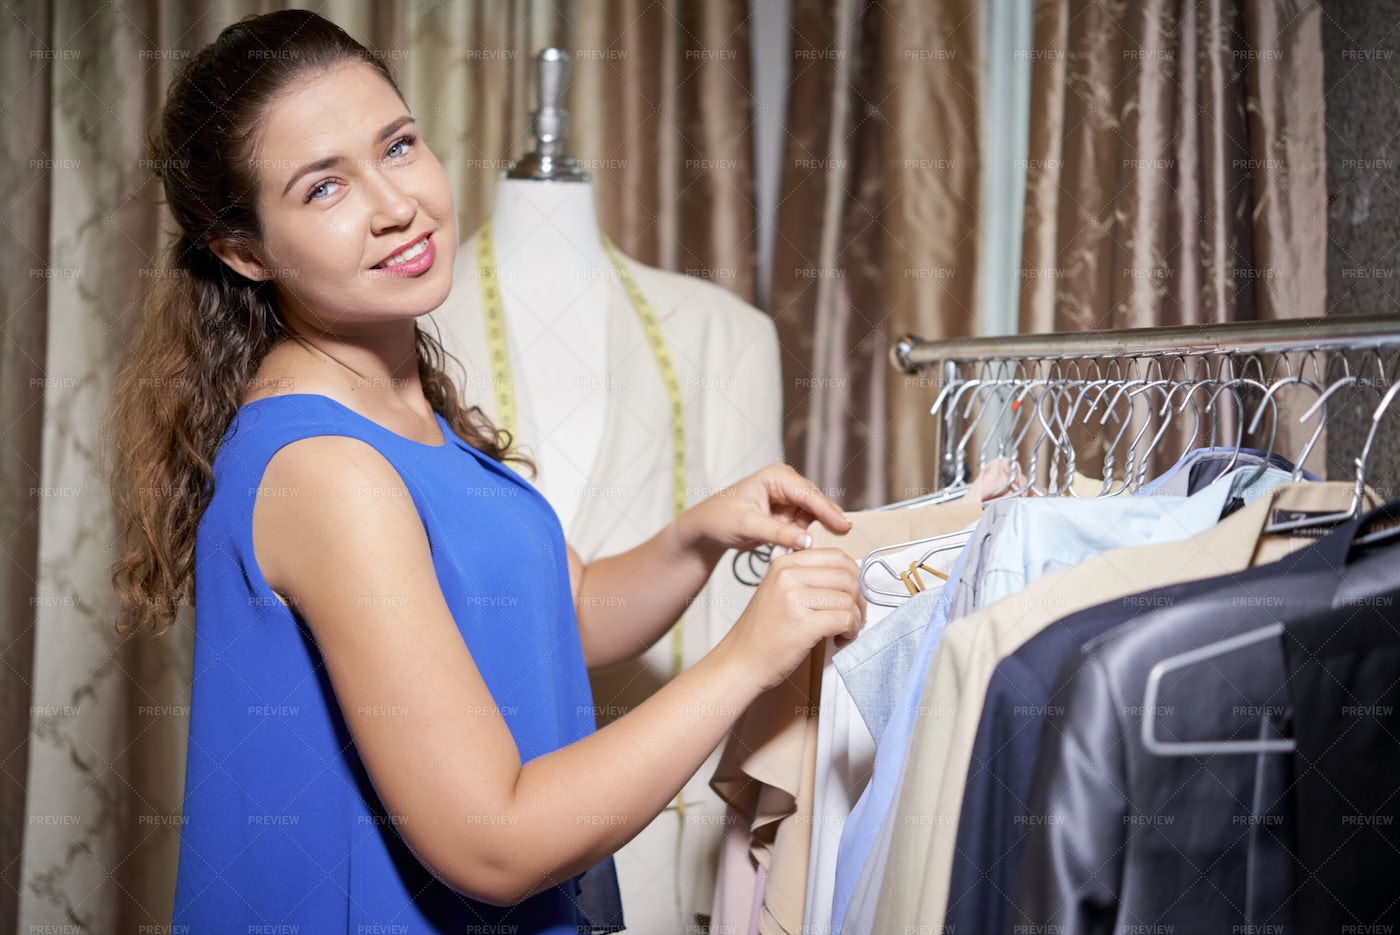 Tailor Working With New Collection Of: Stock Photos